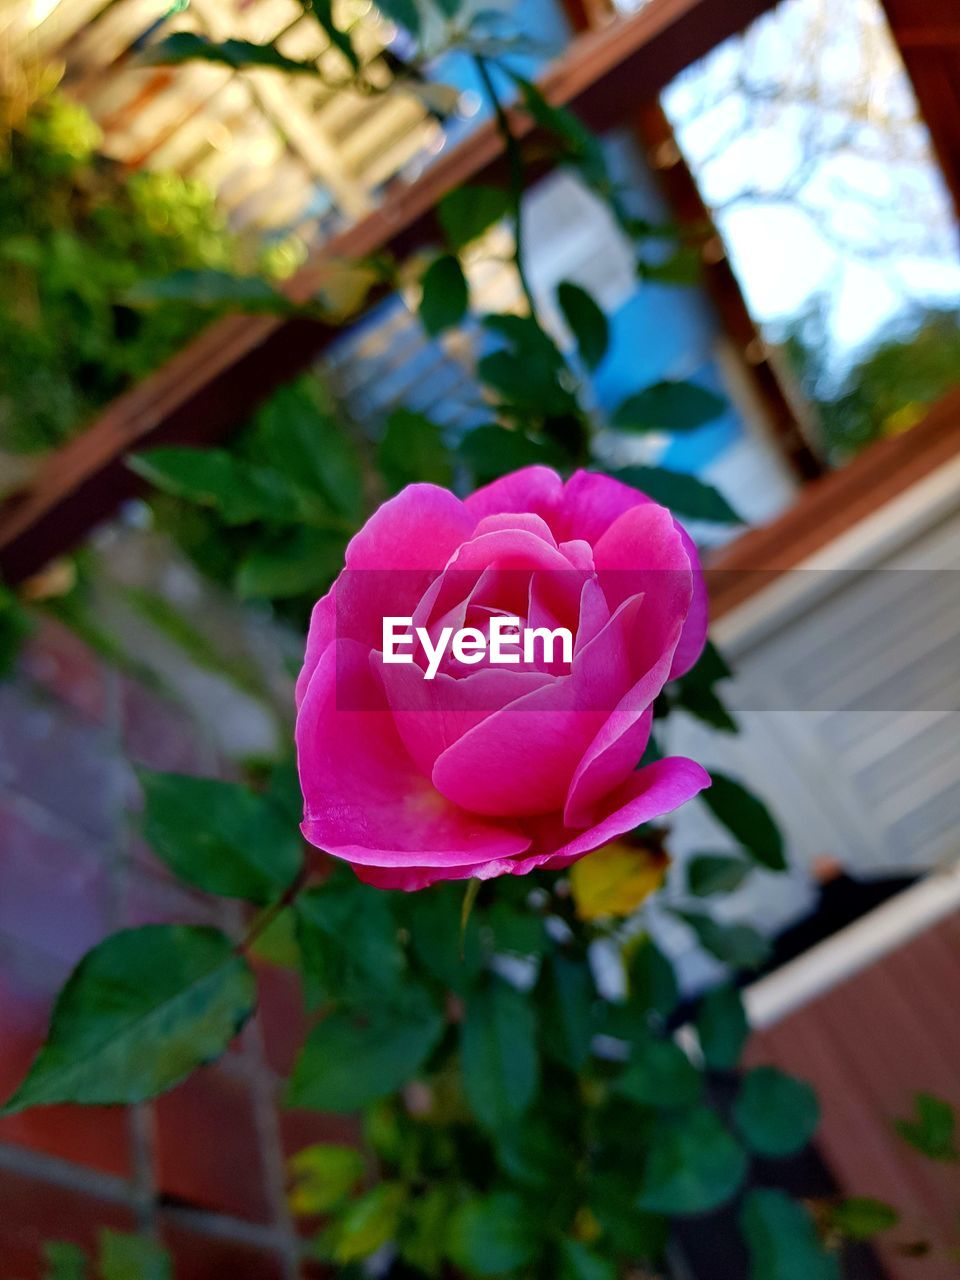 flower, petal, fragility, beauty in nature, nature, leaf, rose - flower, flower head, close-up, pink color, no people, freshness, plant, growth, focus on foreground, day, outdoors, blooming